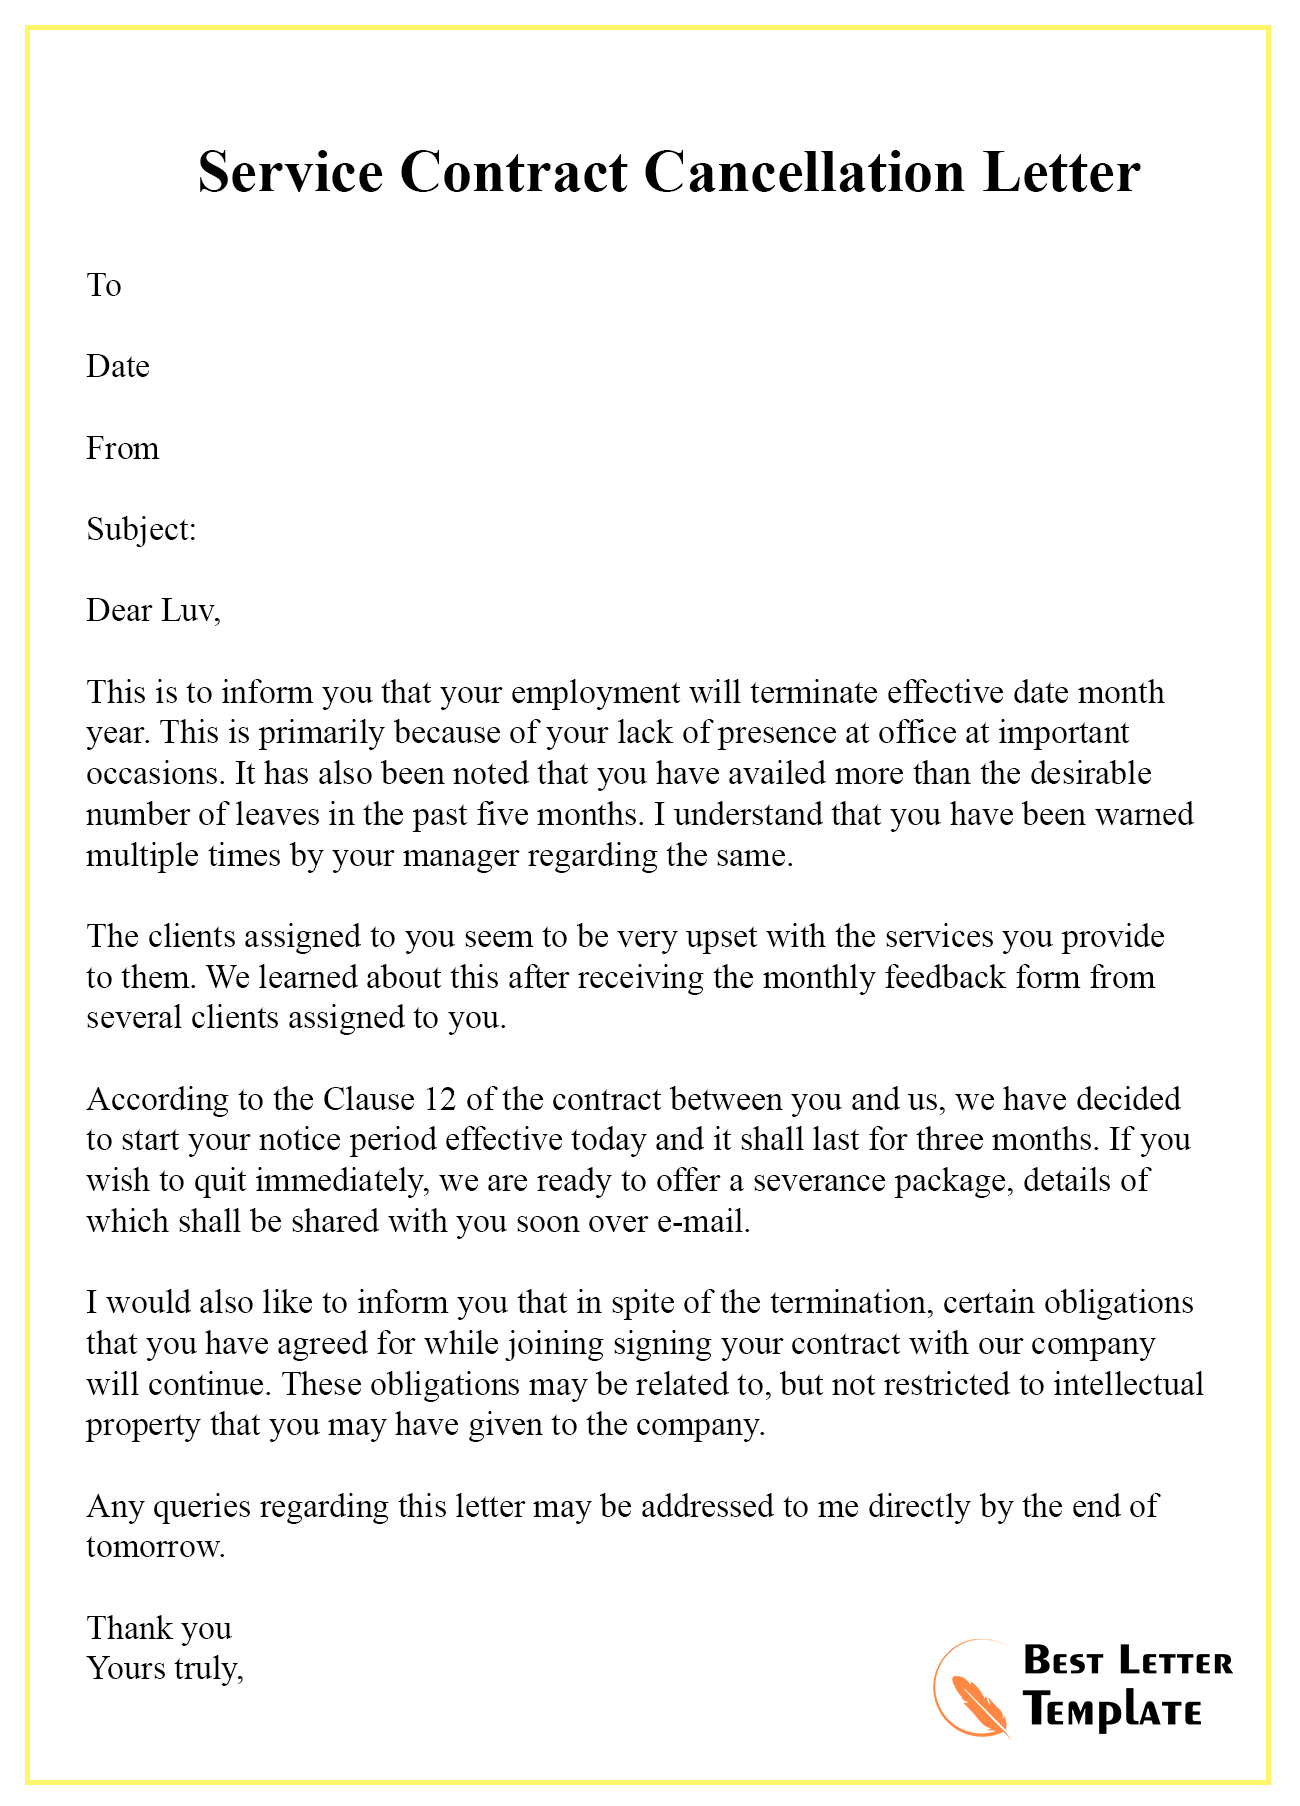 Sample Business Agreement Letter from bestlettertemplate.com